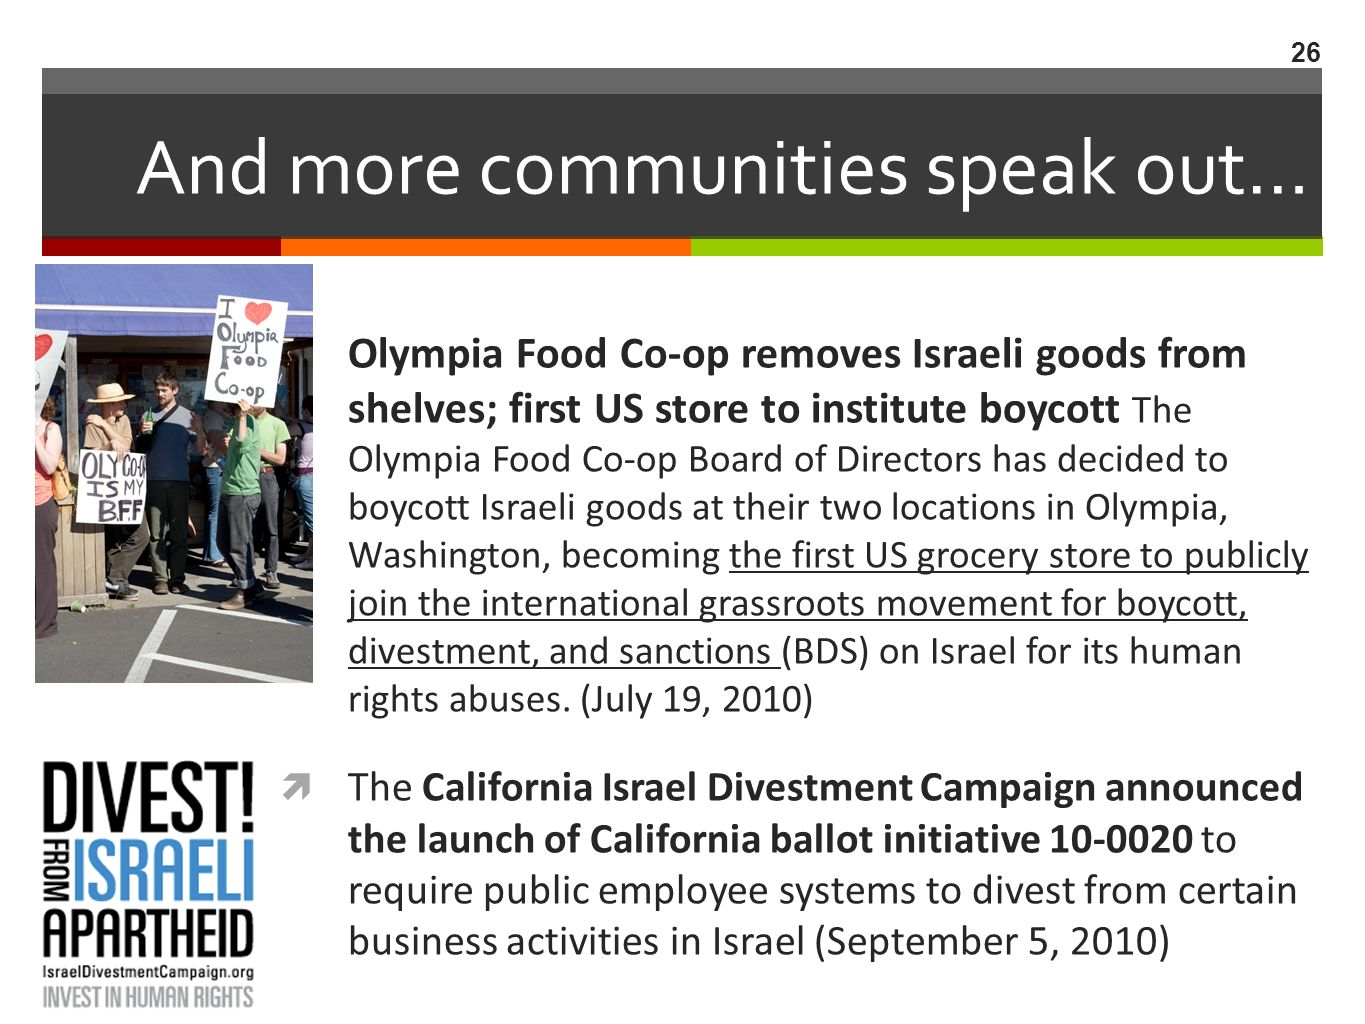 And more communities speak out… Olympia Food Co-op removes Israeli goods from shelves; first US store to institute boycott The Olympia Food Co-op Board of Directors has decided to boycott Israeli goods at their two locations in Olympia, Washington, becoming the first US grocery store to publicly join the international grassroots movement for boycott, divestment, and sanctions (BDS) on Israel for its human rights abuses.